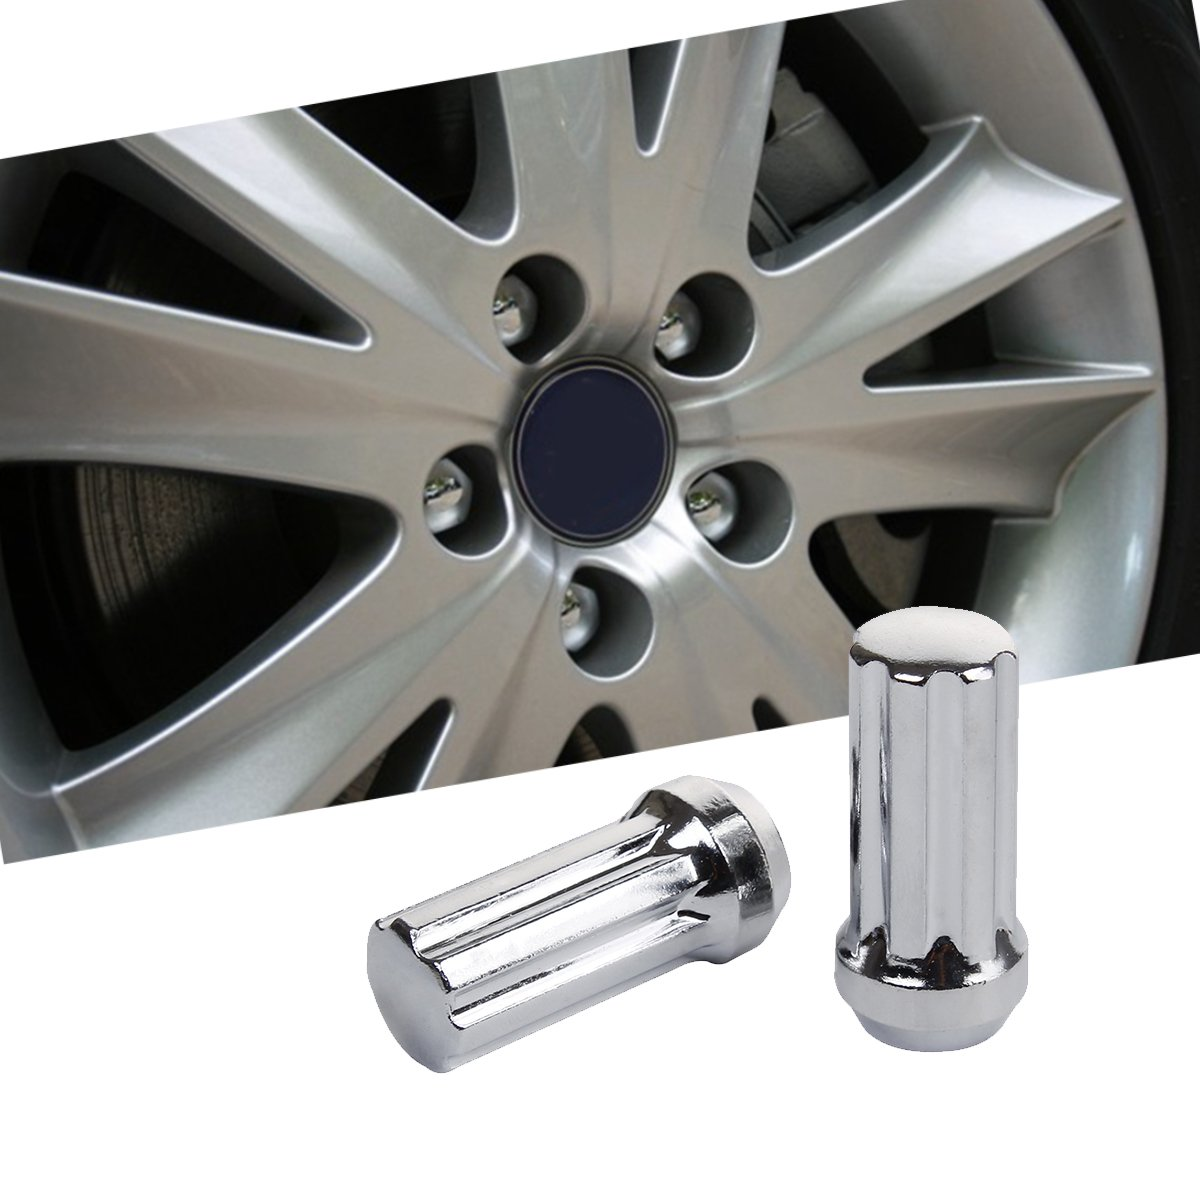 KSP Performance 24PC KSP 14mmx1.5(M14x1.5 thread pitch),60 Degree Conical Cone Seat Wheel Lug Nuts,Closed End 7 Spilne With 2 Keys For Chevy GMC Silverado Sierra Hummer With 6 Lugs Trucks by KSP Performance (Image #7)